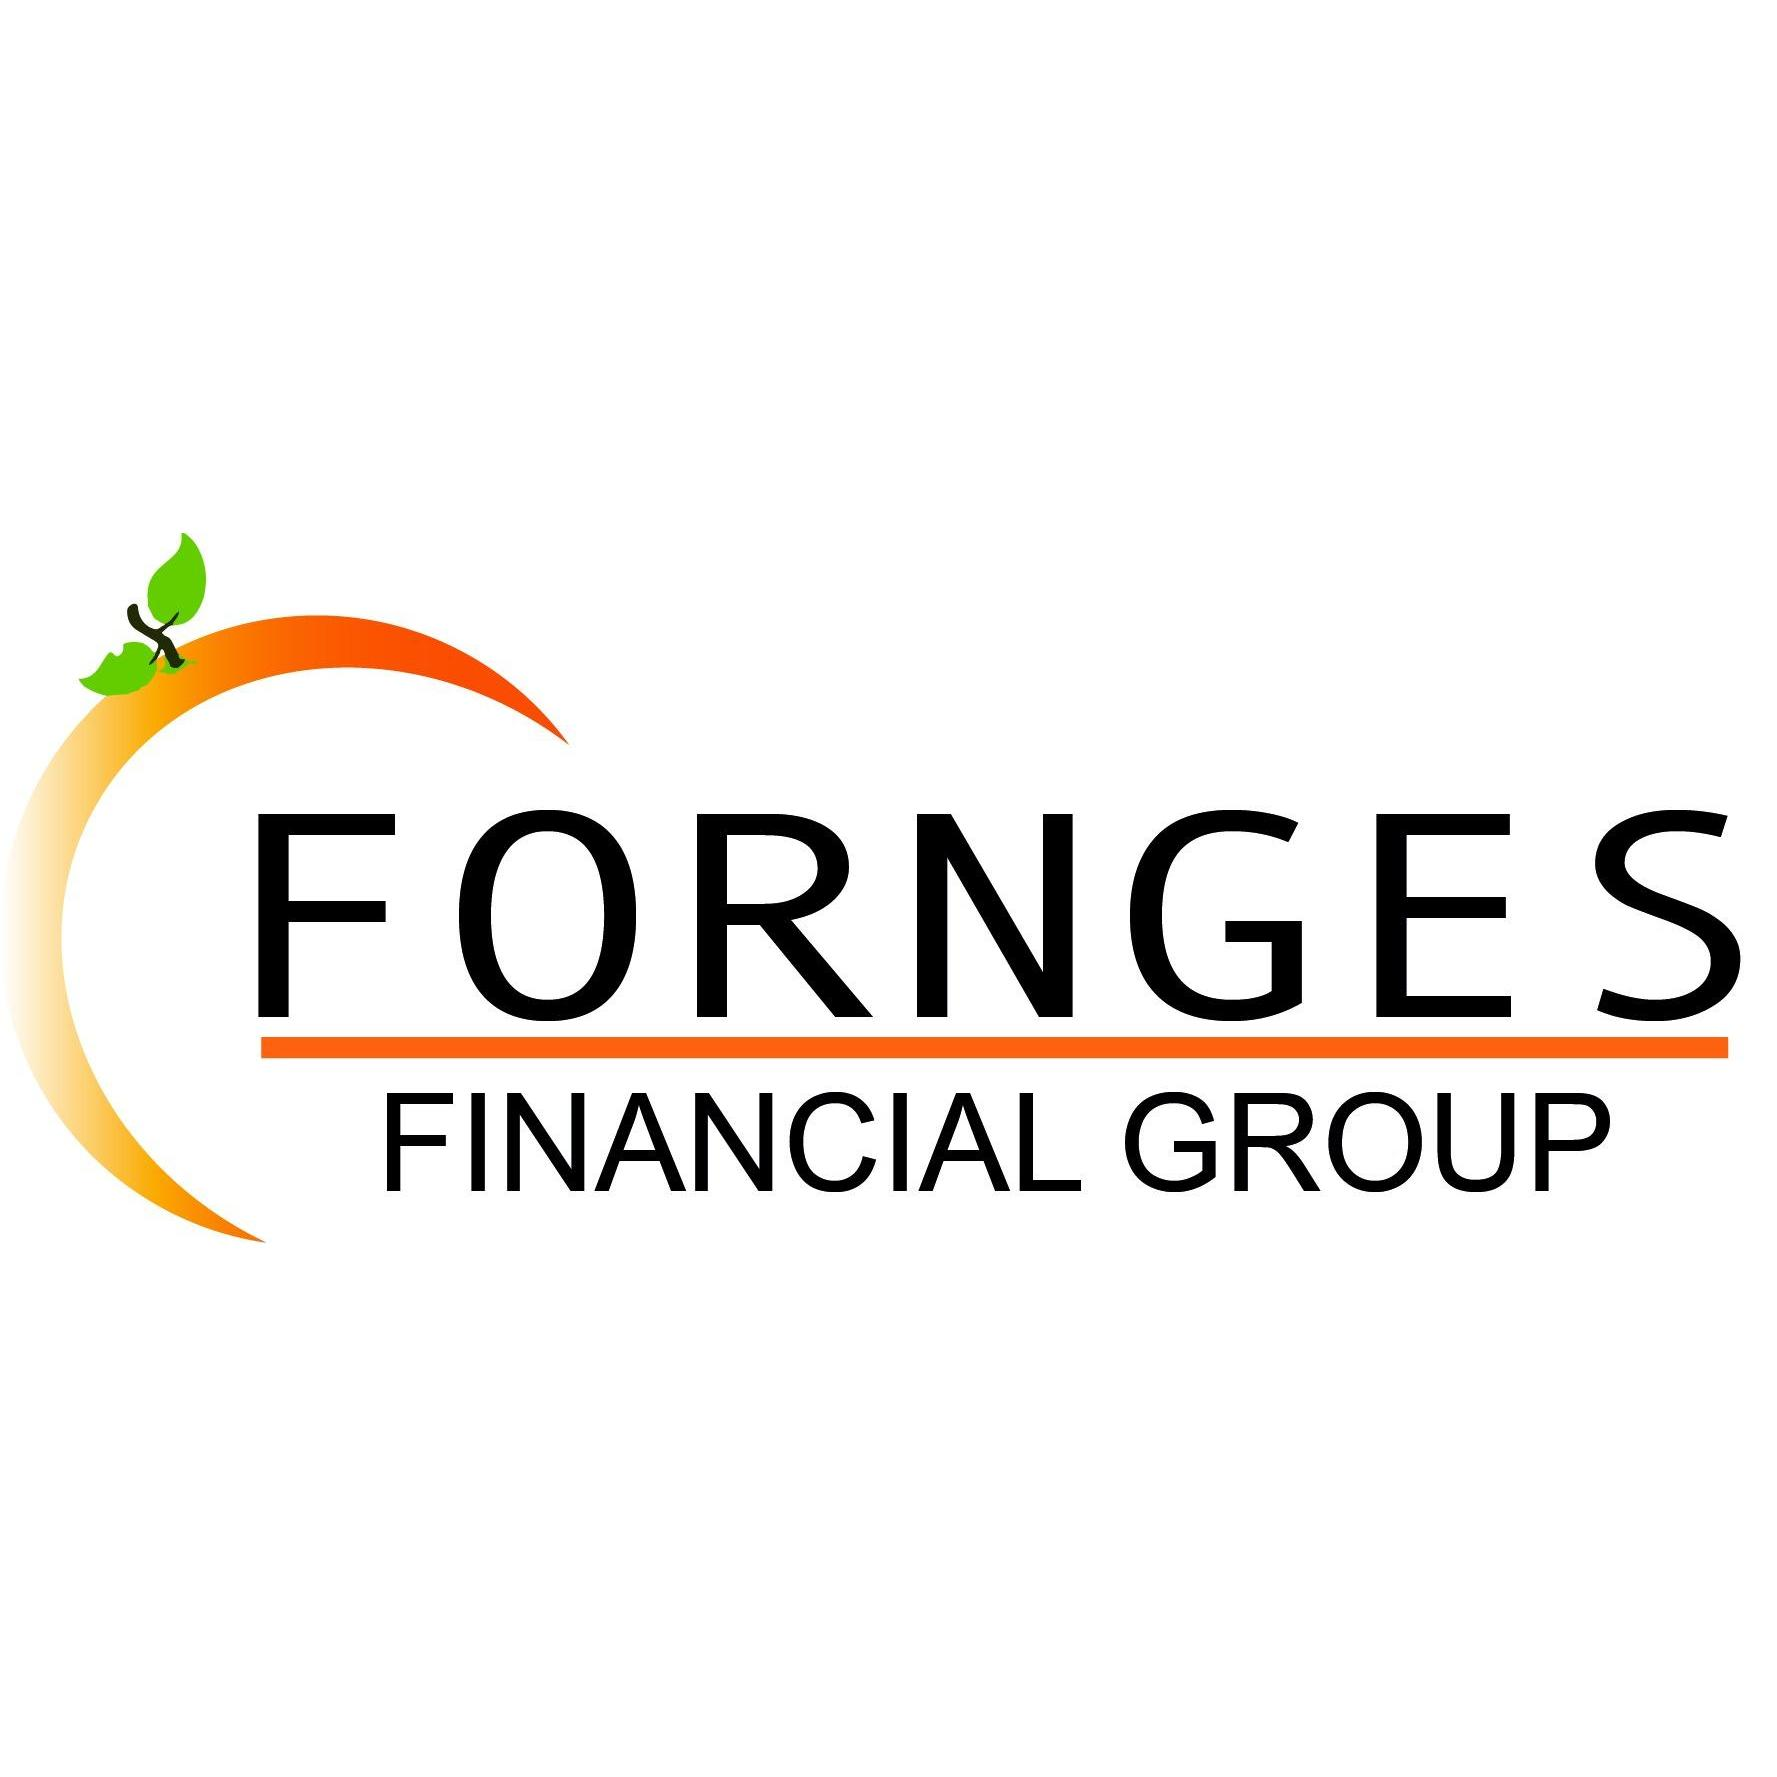 Fornges Financial Group